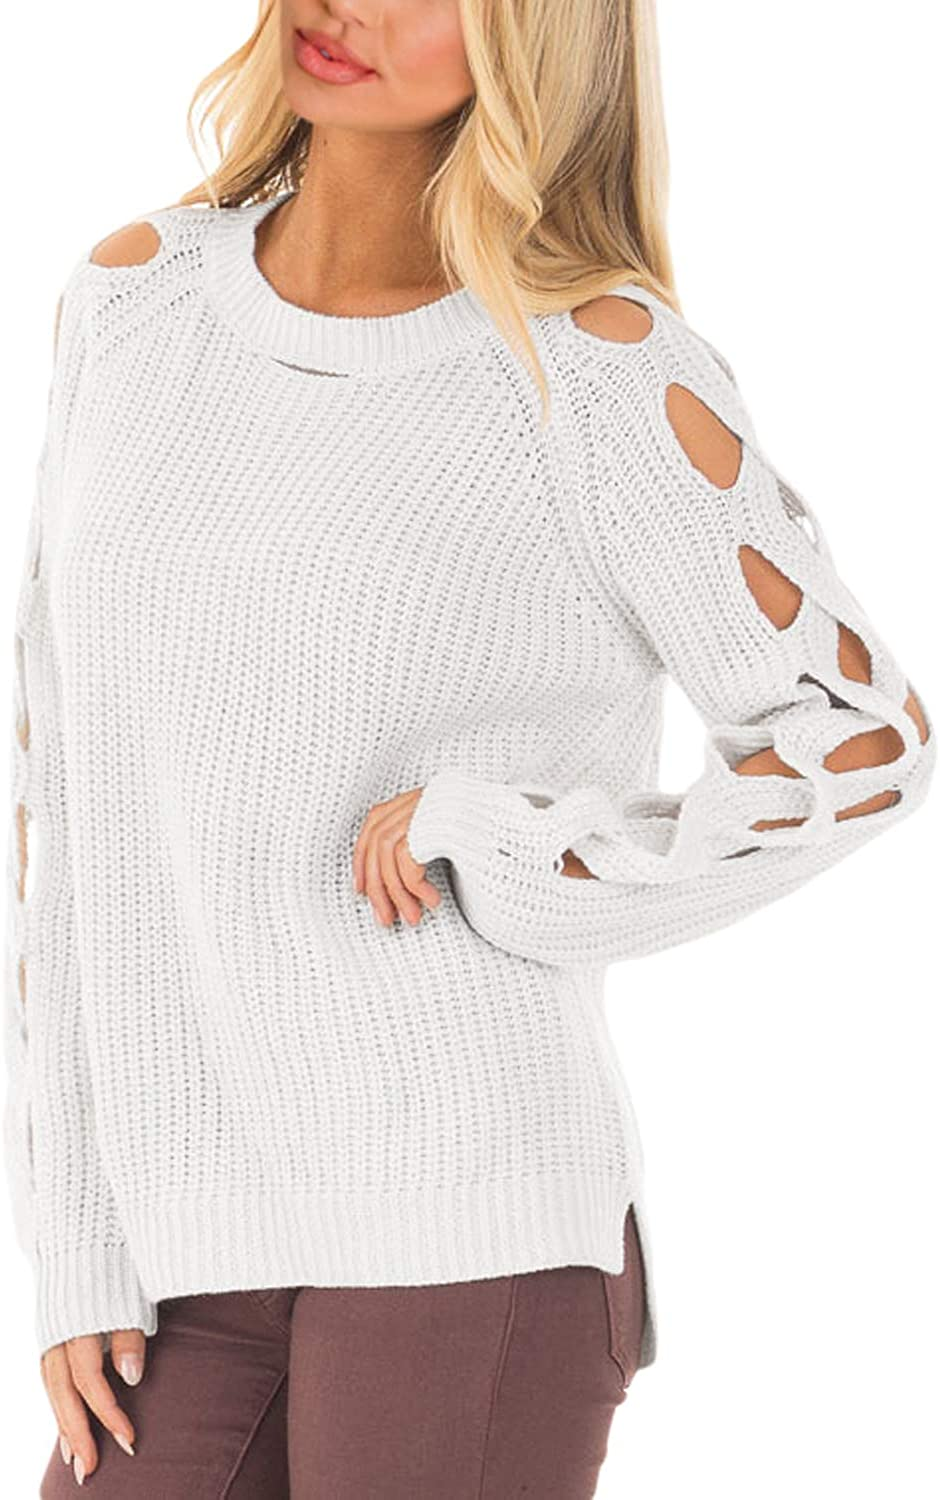 Podlily Women's Off Shoulder ALine Cutout Detail Ribbed Knit Sweater